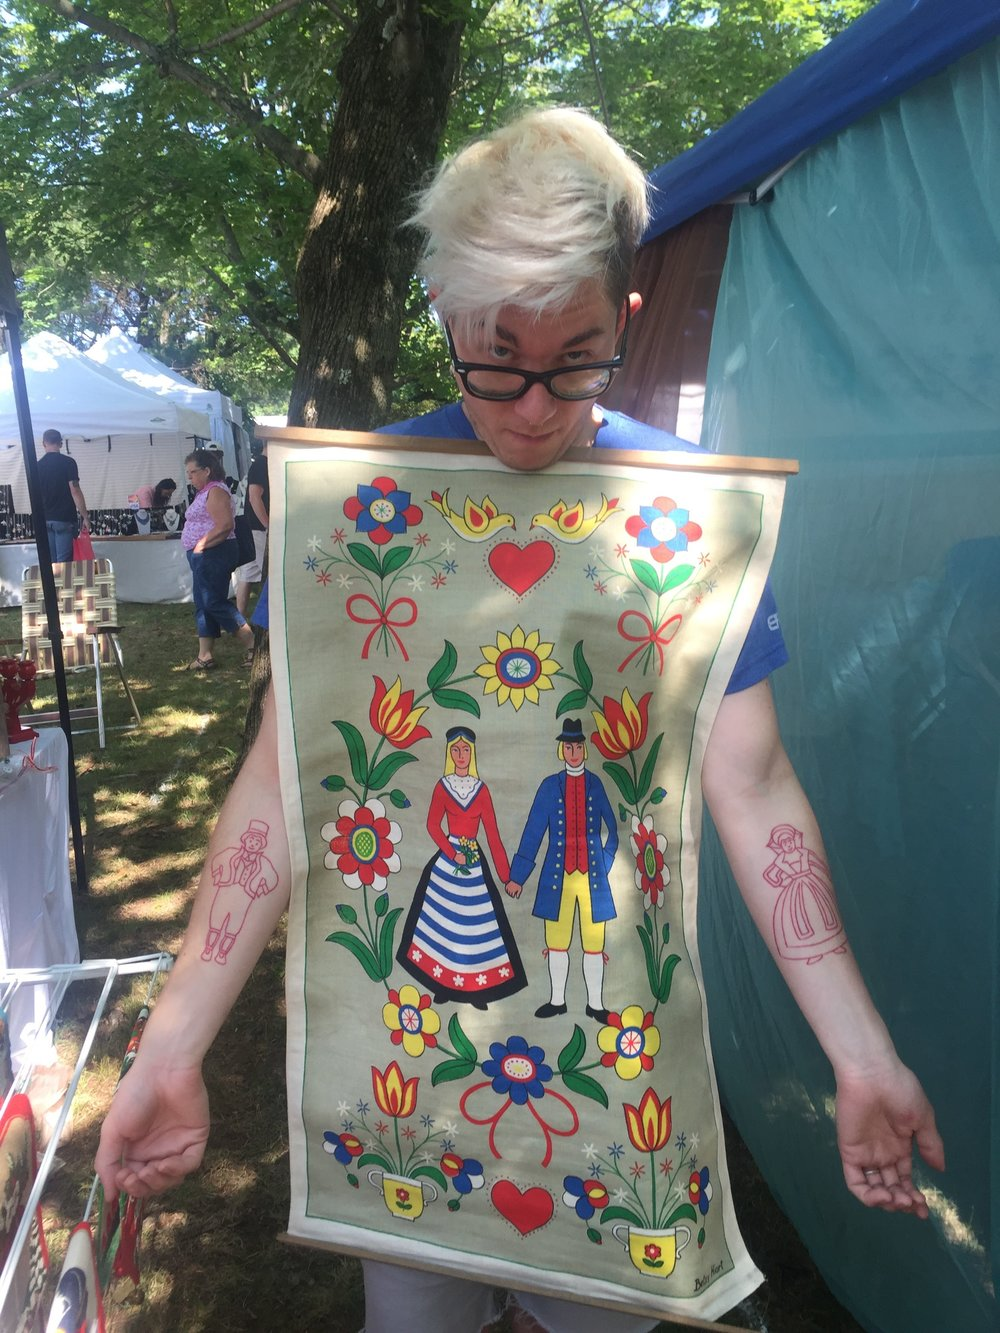 We look forward to Scandinavia Fest every summer.  I thought this tapestry resembled my tattoos!